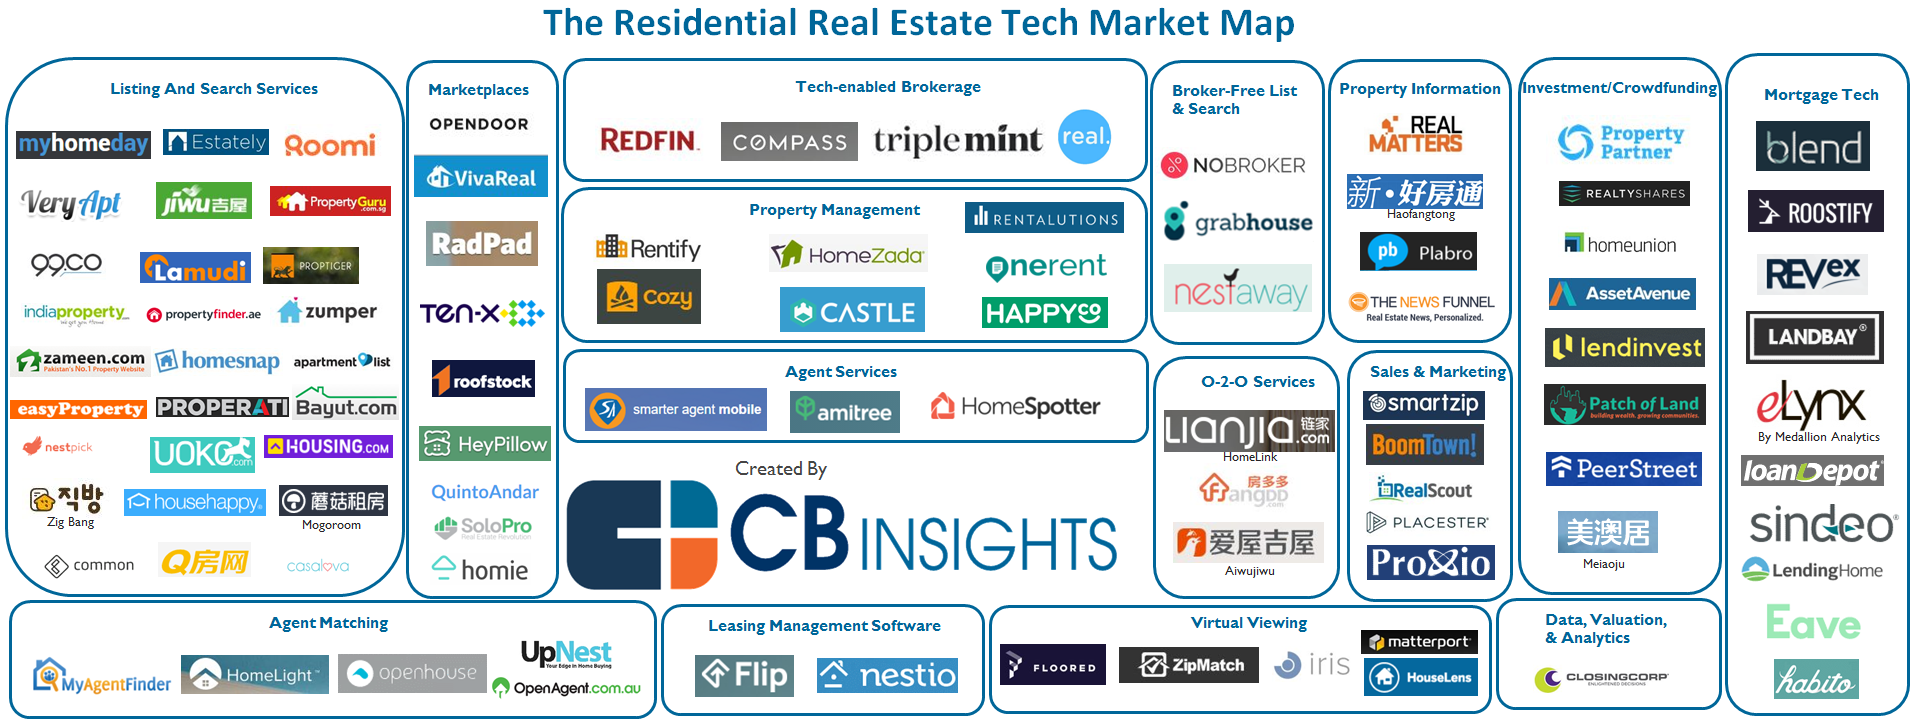 Startups reshaping residential real estate buying and selling